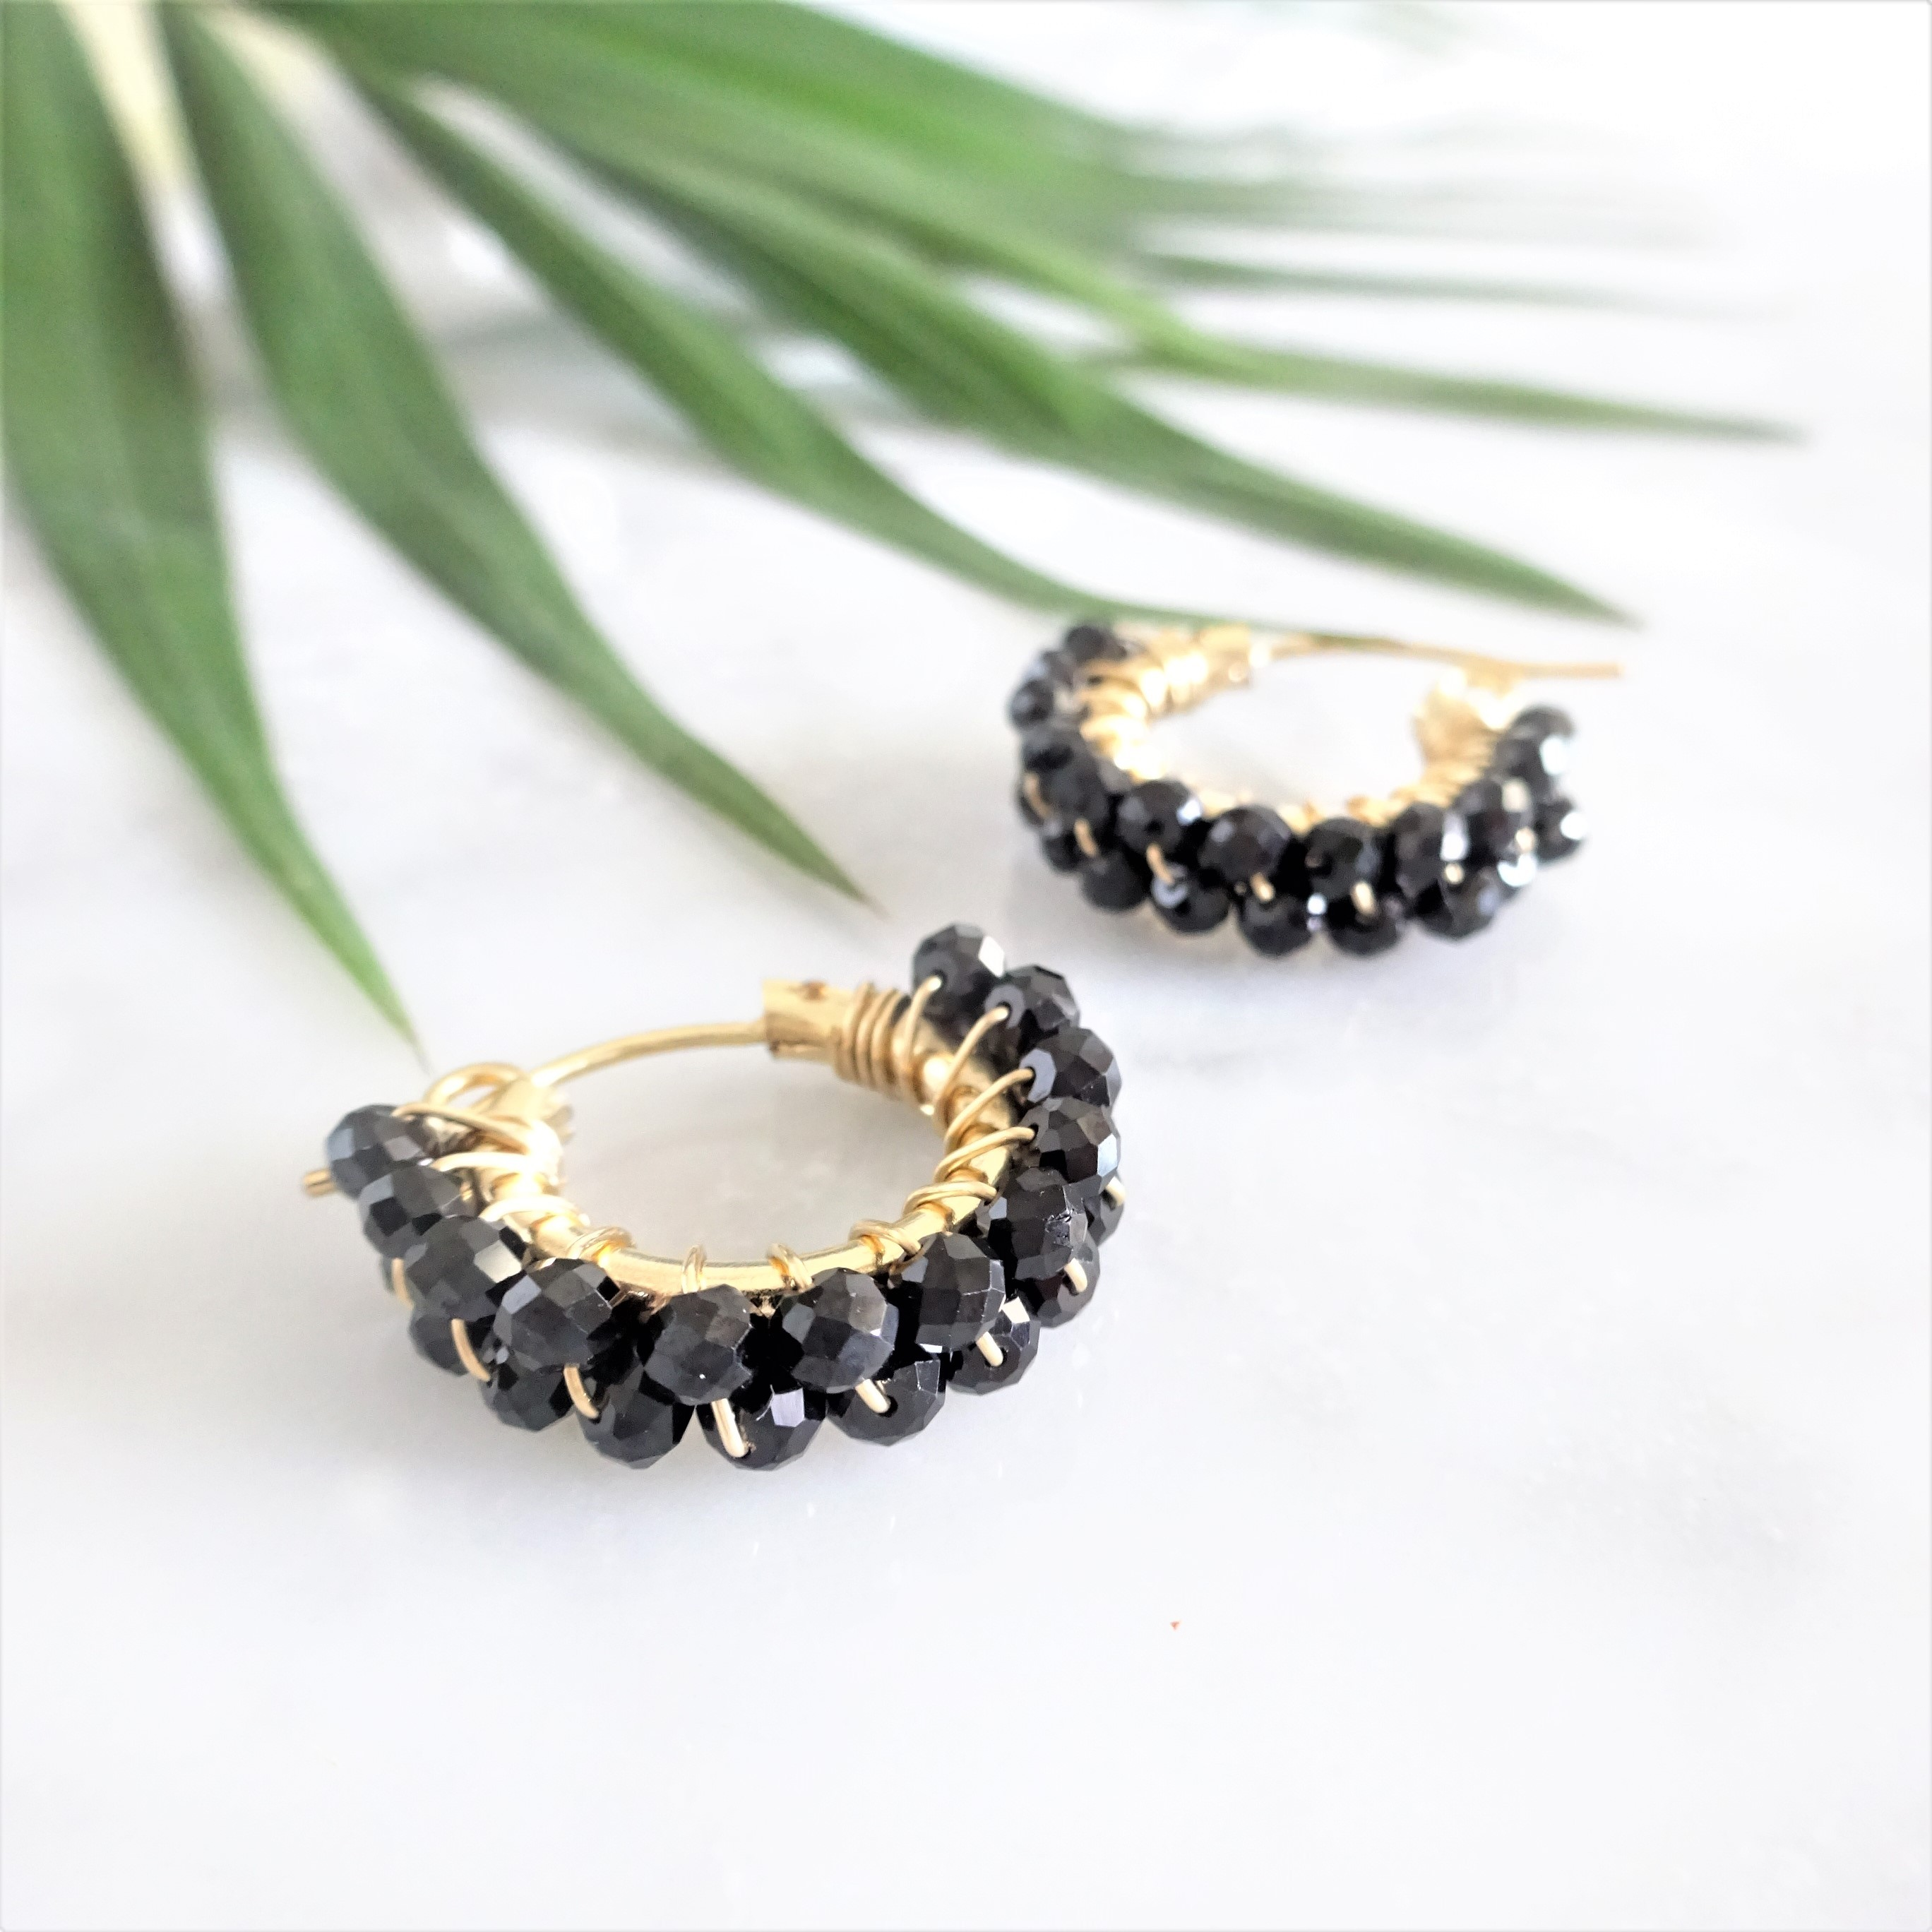 送料無料 14kgf*AAA宝石質 Black Spinel wrapped pierced earring/earring